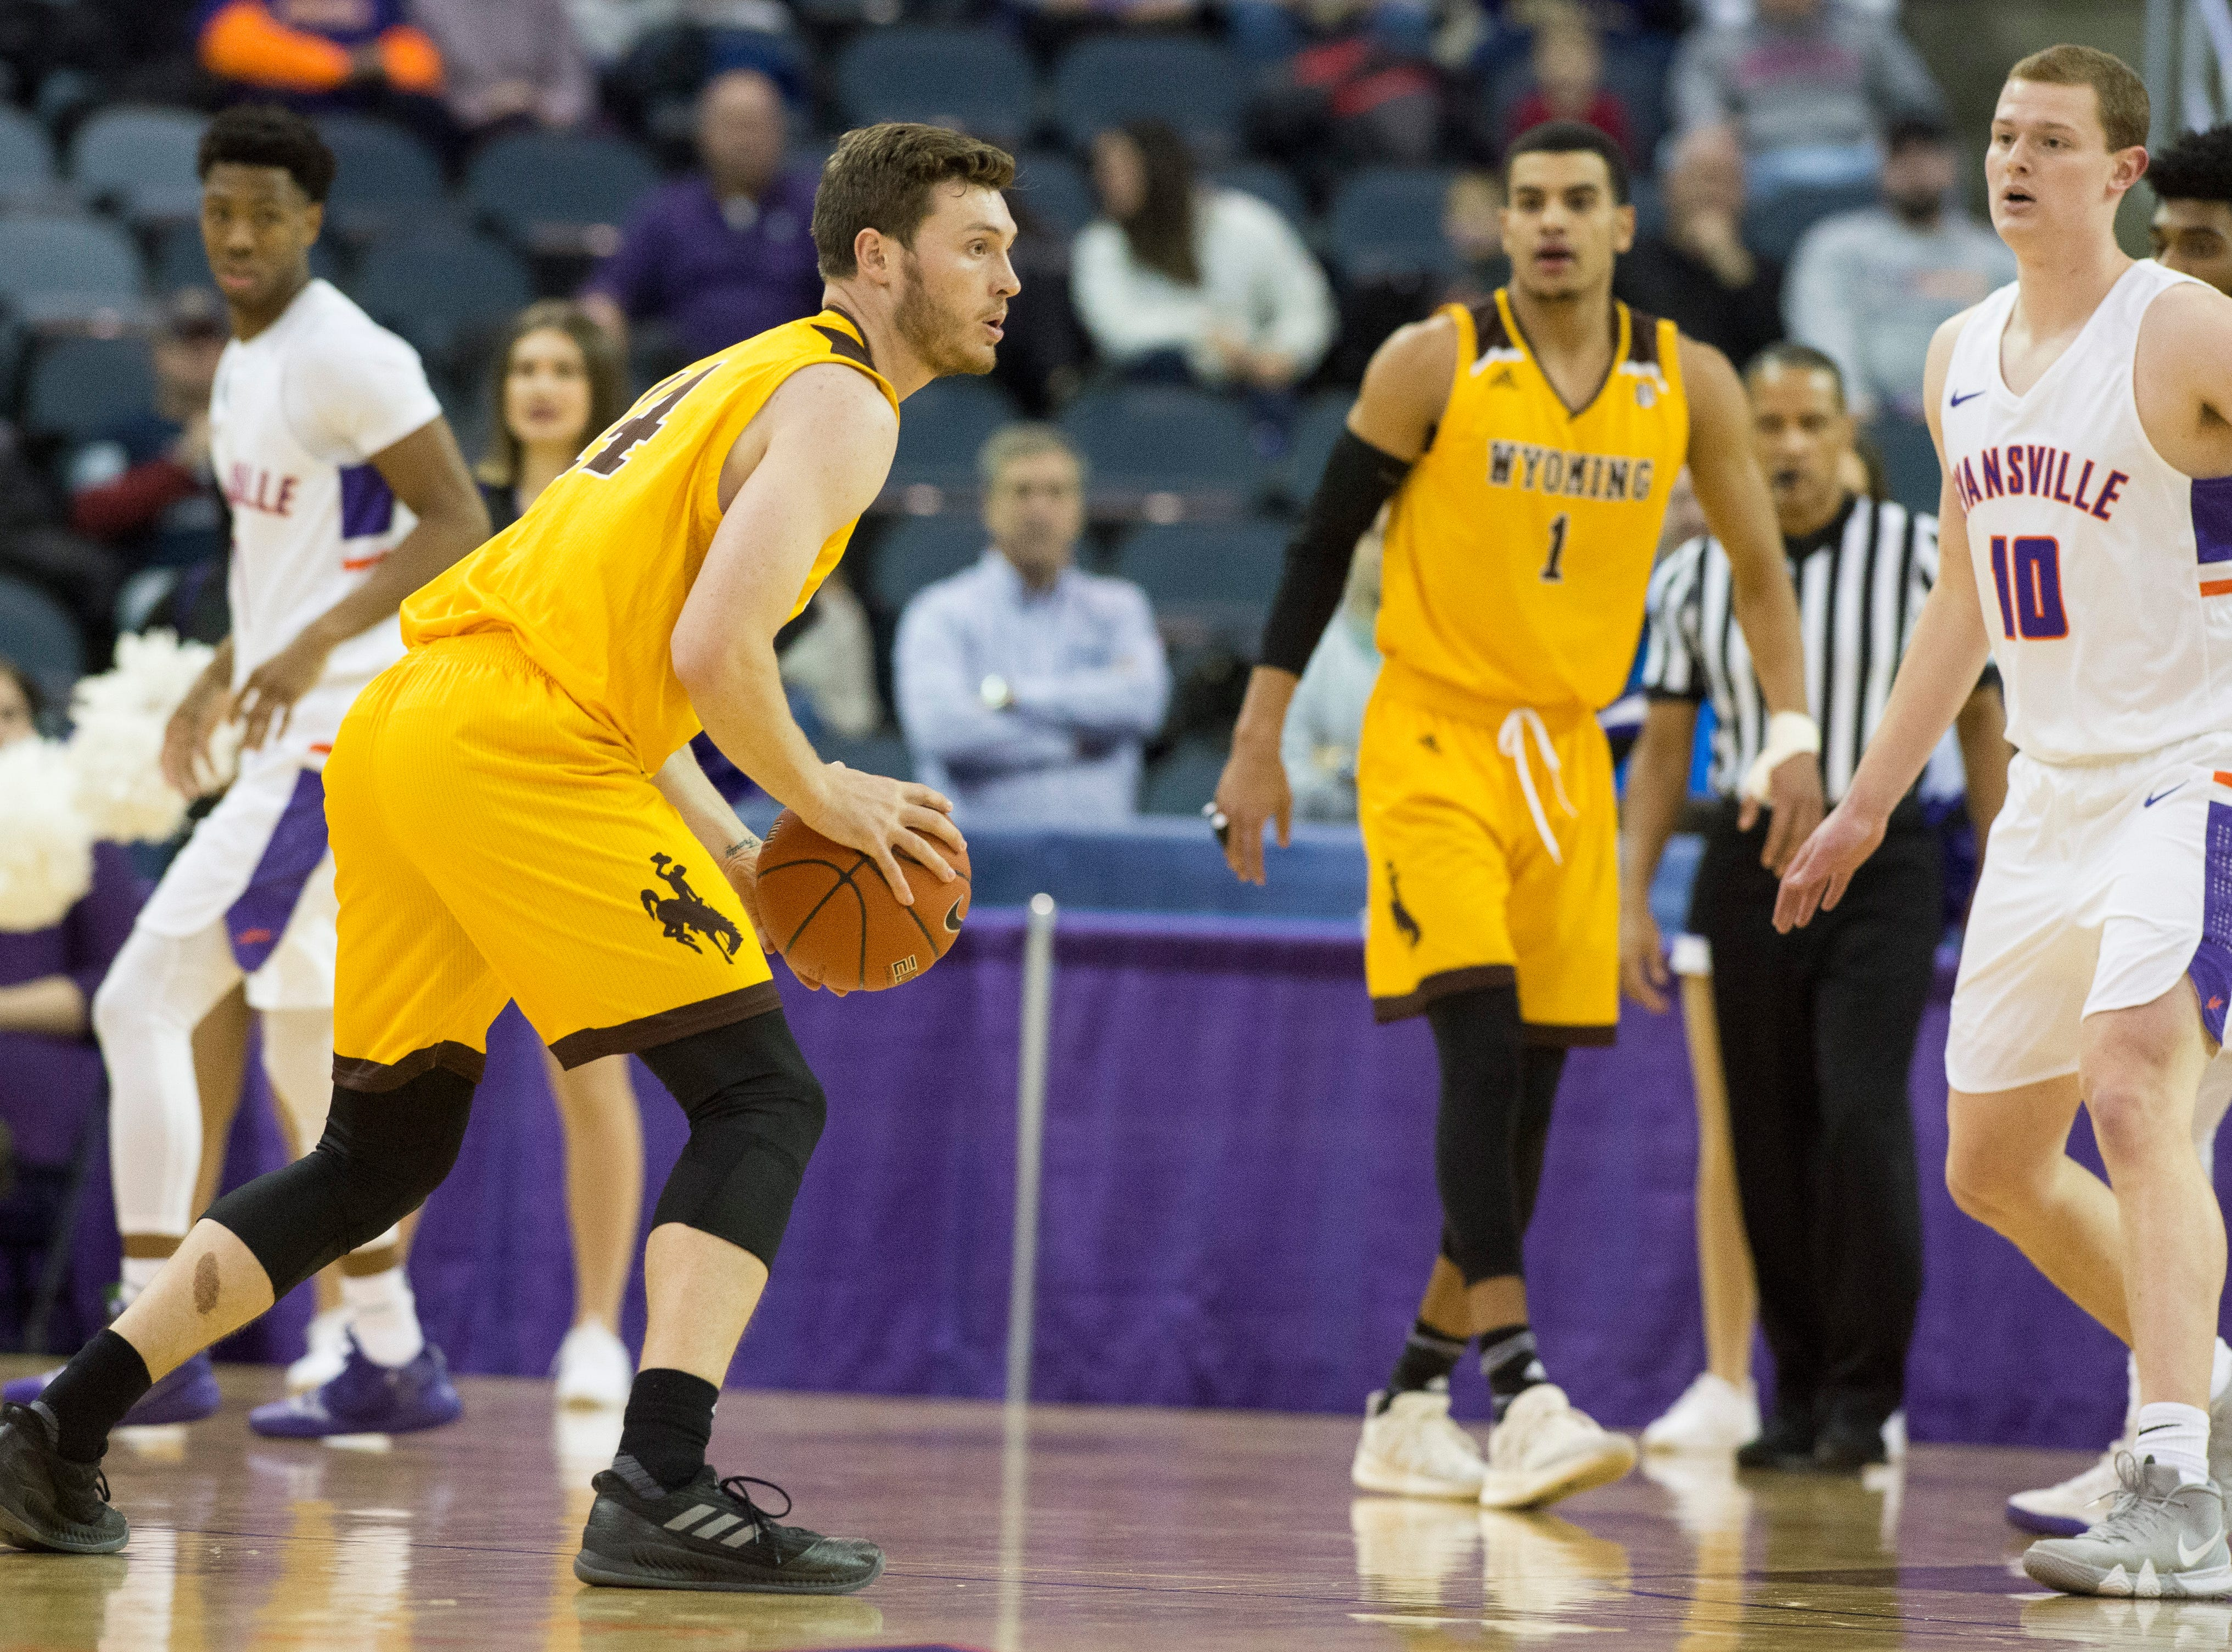 Wyoming's Austin Mueller looks to pass the ball during the UE vs Wyoming game at the Ford Center Wednesday, Nov. 28, 2018. UE won 86-76.